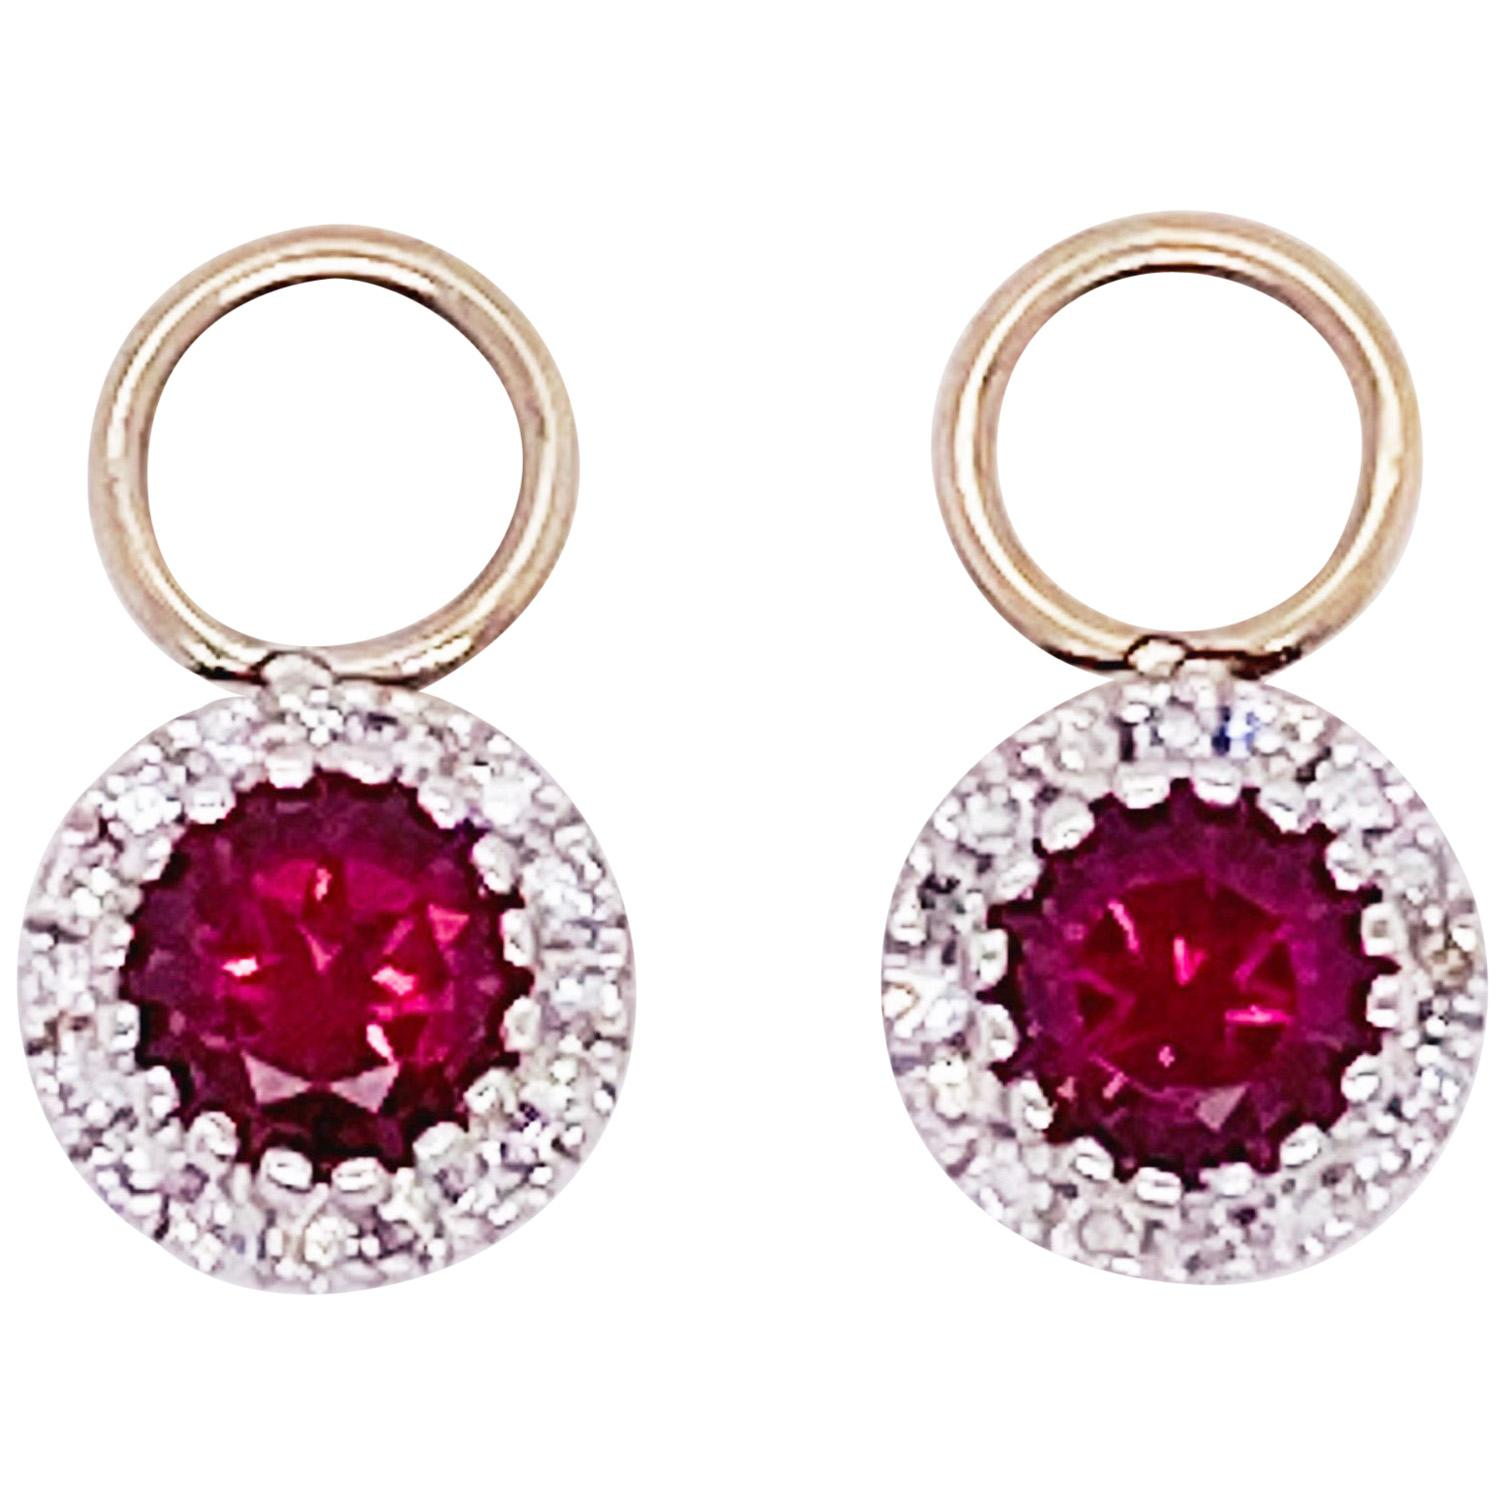 Garnet Diamond Earring Charms, Red Garnet, 14 Karat Gold, Hoop Charm, .79 Carat